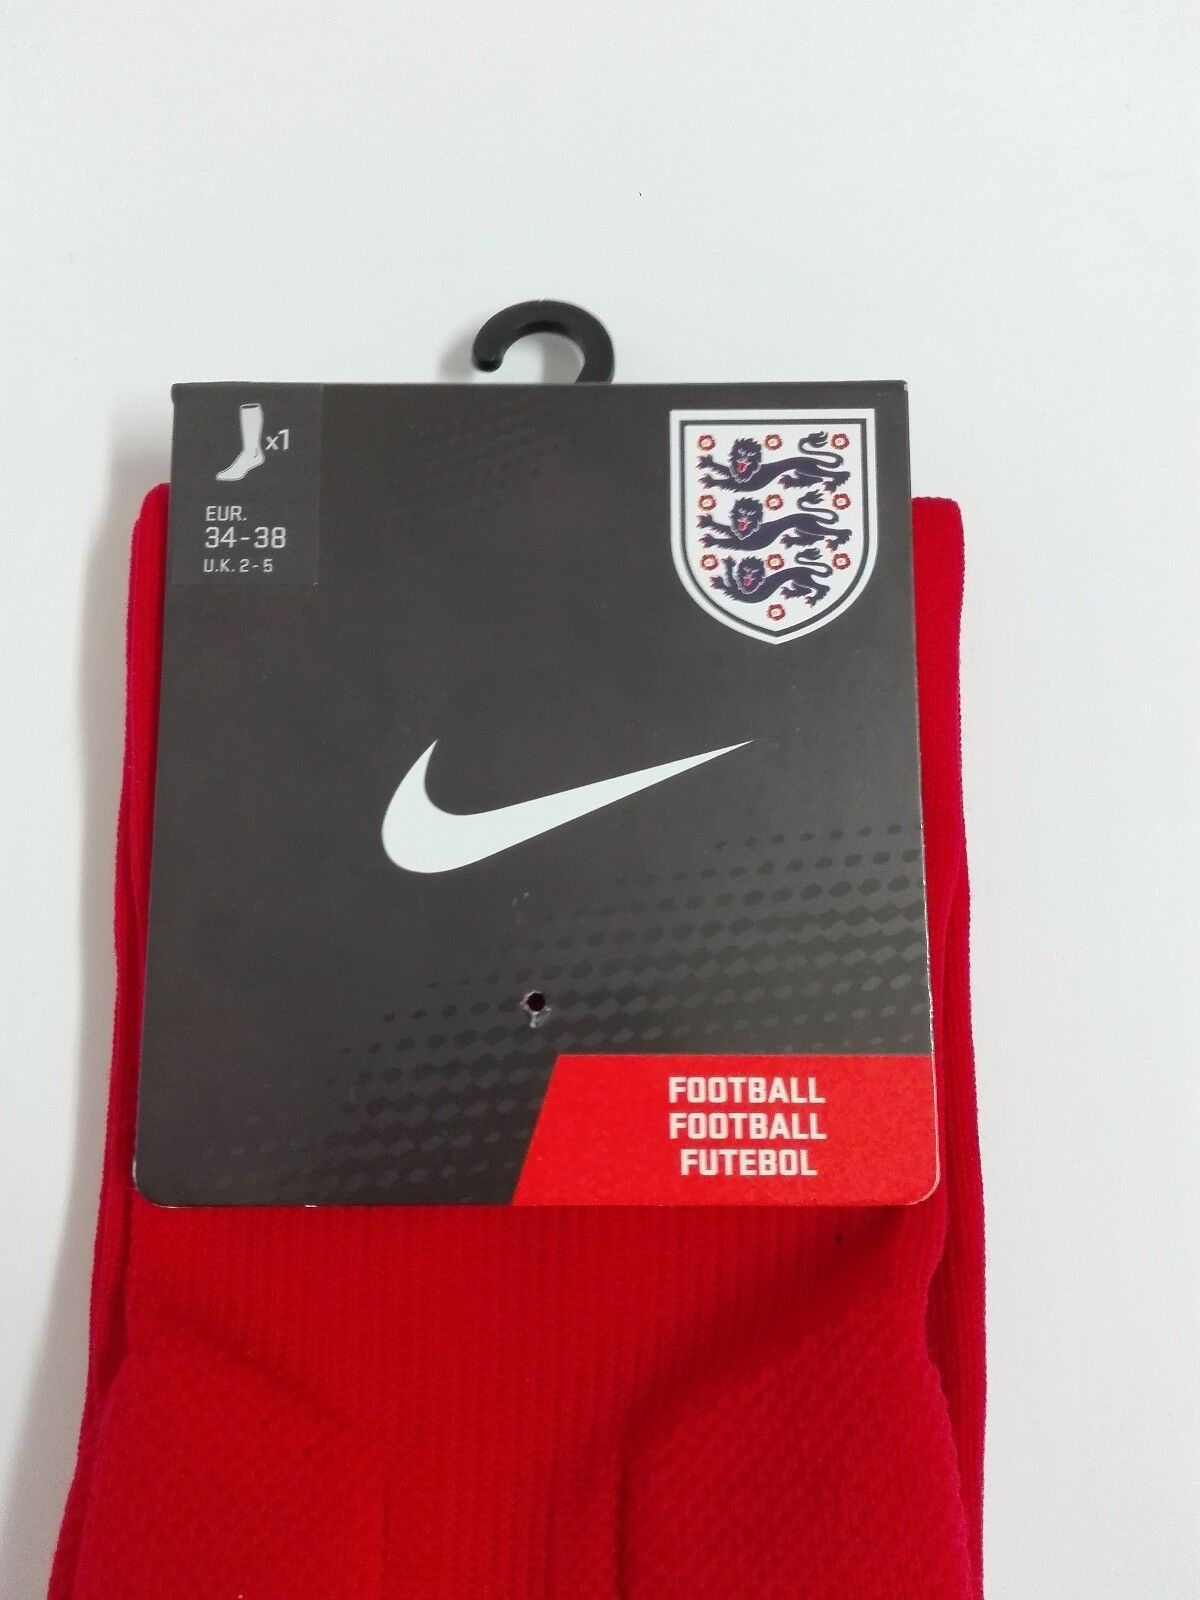 Chaussettes Chaussettes Chaussettes de Football Nike Officiel Sélection Anglais Angleterre Taille 2d2044